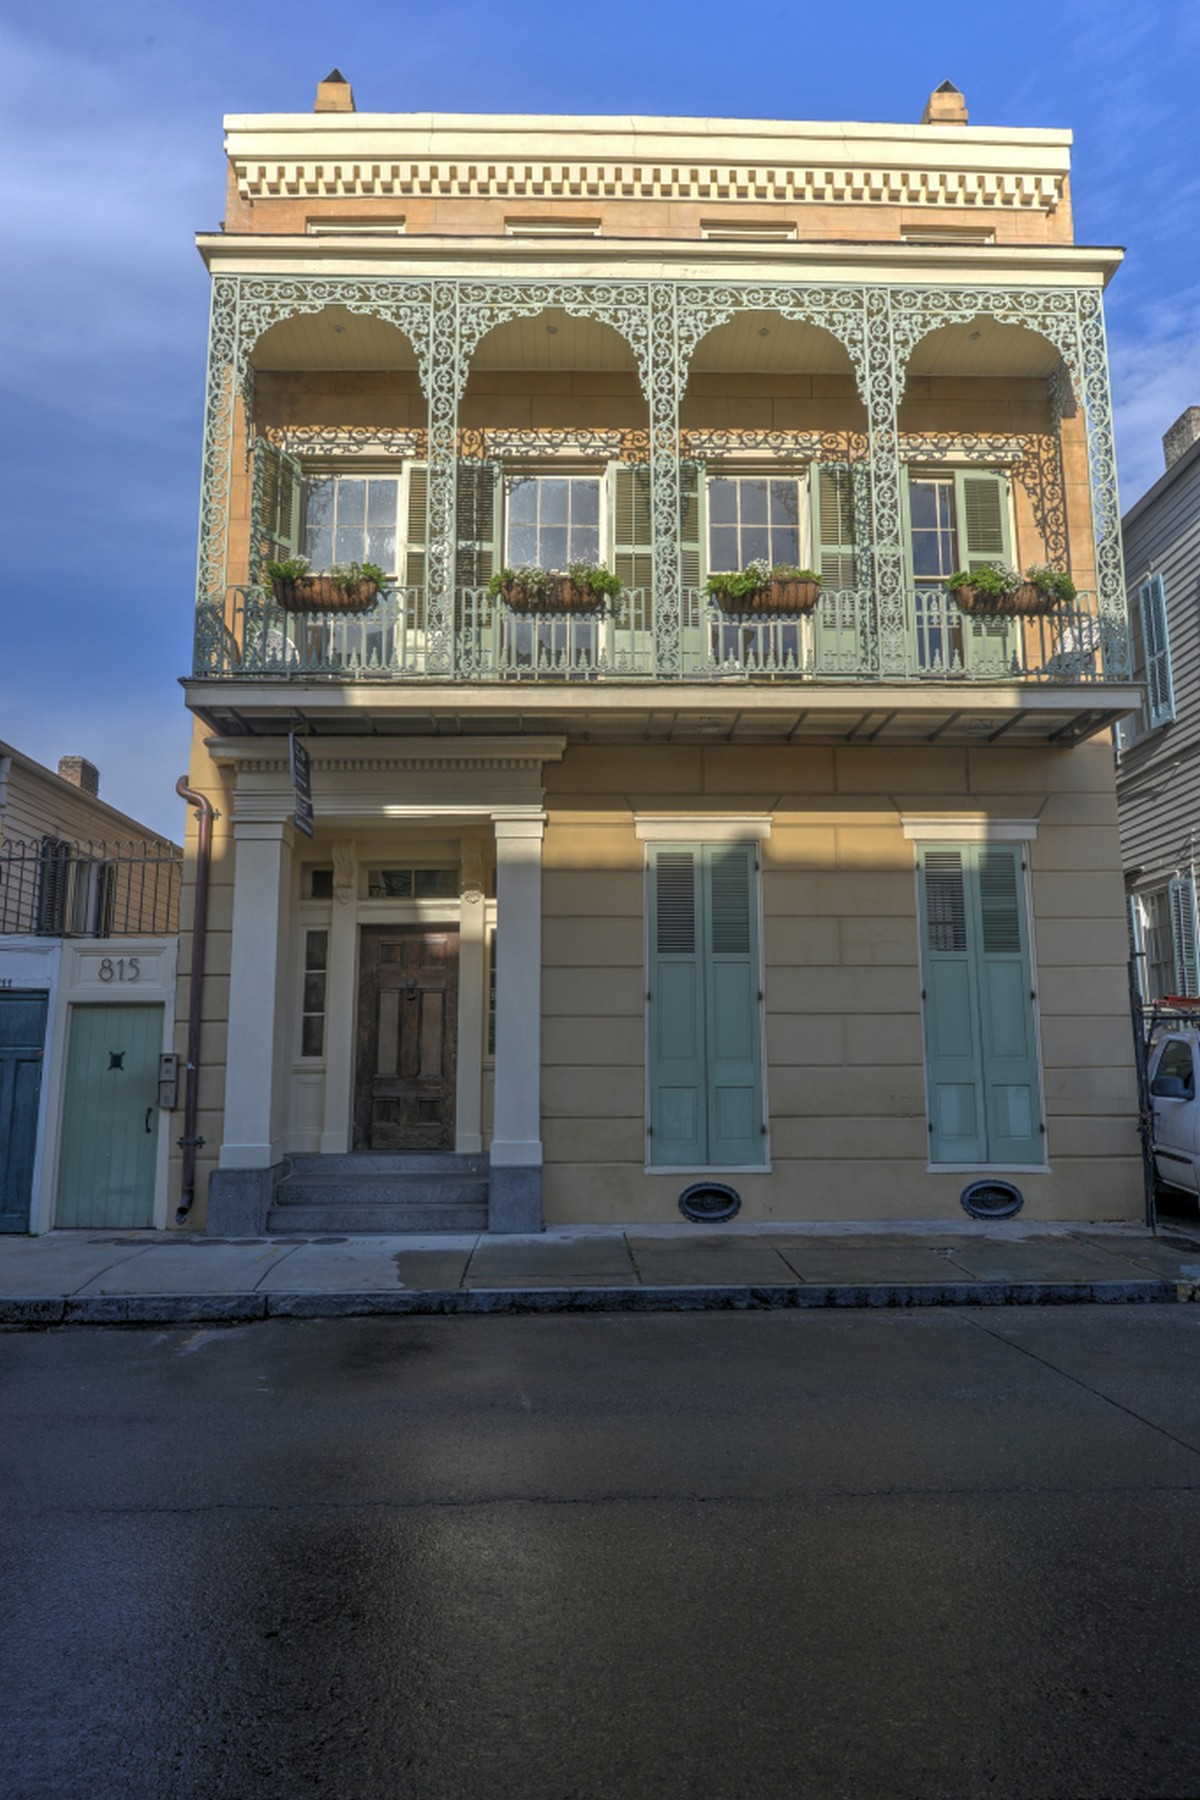 Condominium for Sale at 815 Dauphine St 815 Dauphine St #E New Orleans, Louisiana 70116 United States